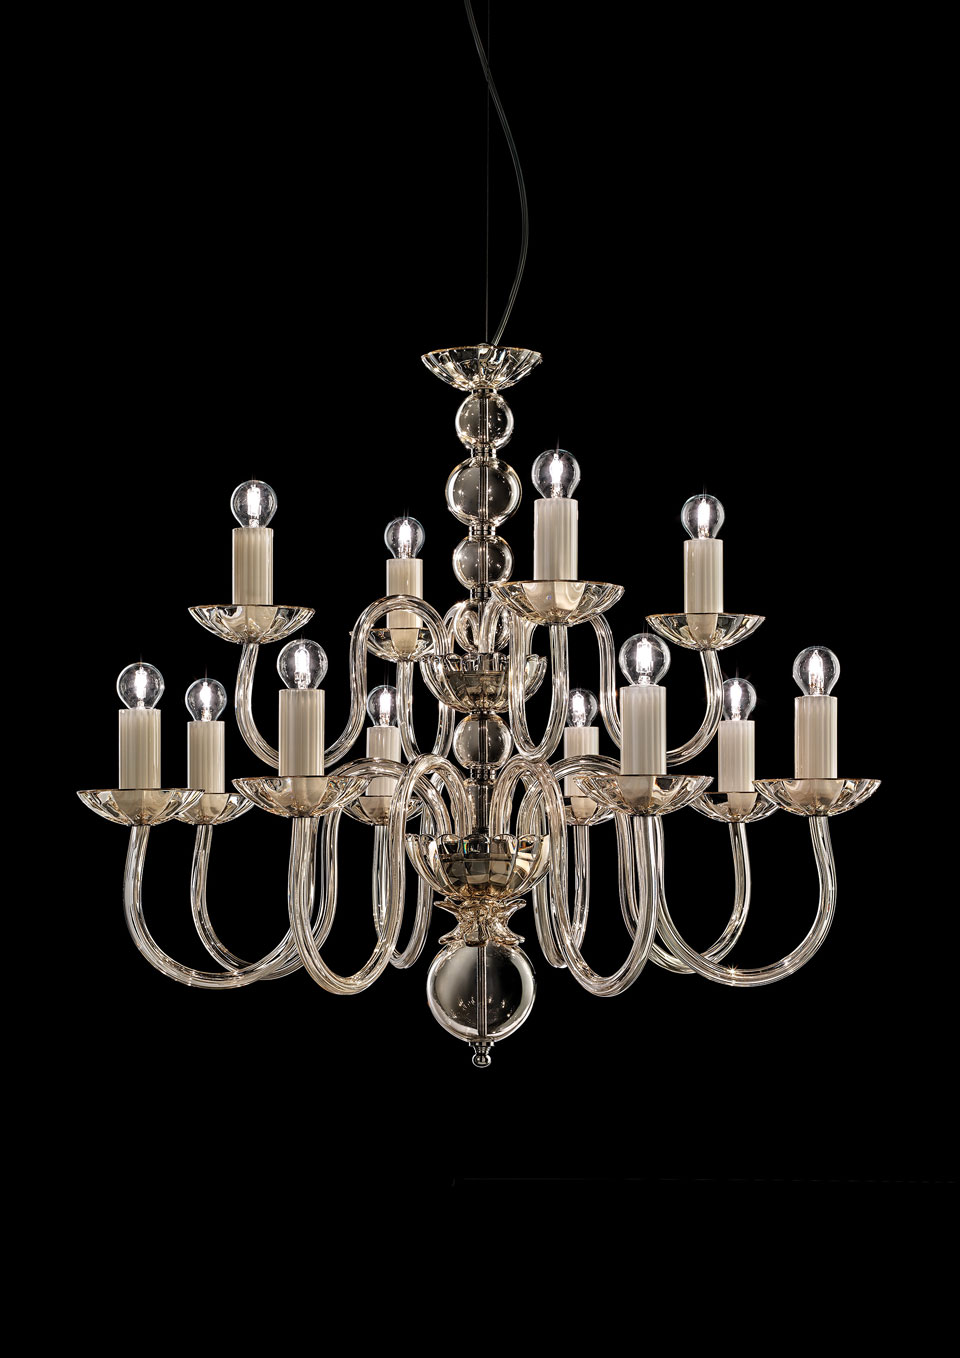 Image of: Contemporary Chandelier 12 Lights 2 Stages Italamp Lustre Classic And Contemporary Chandelier Ref 18050004